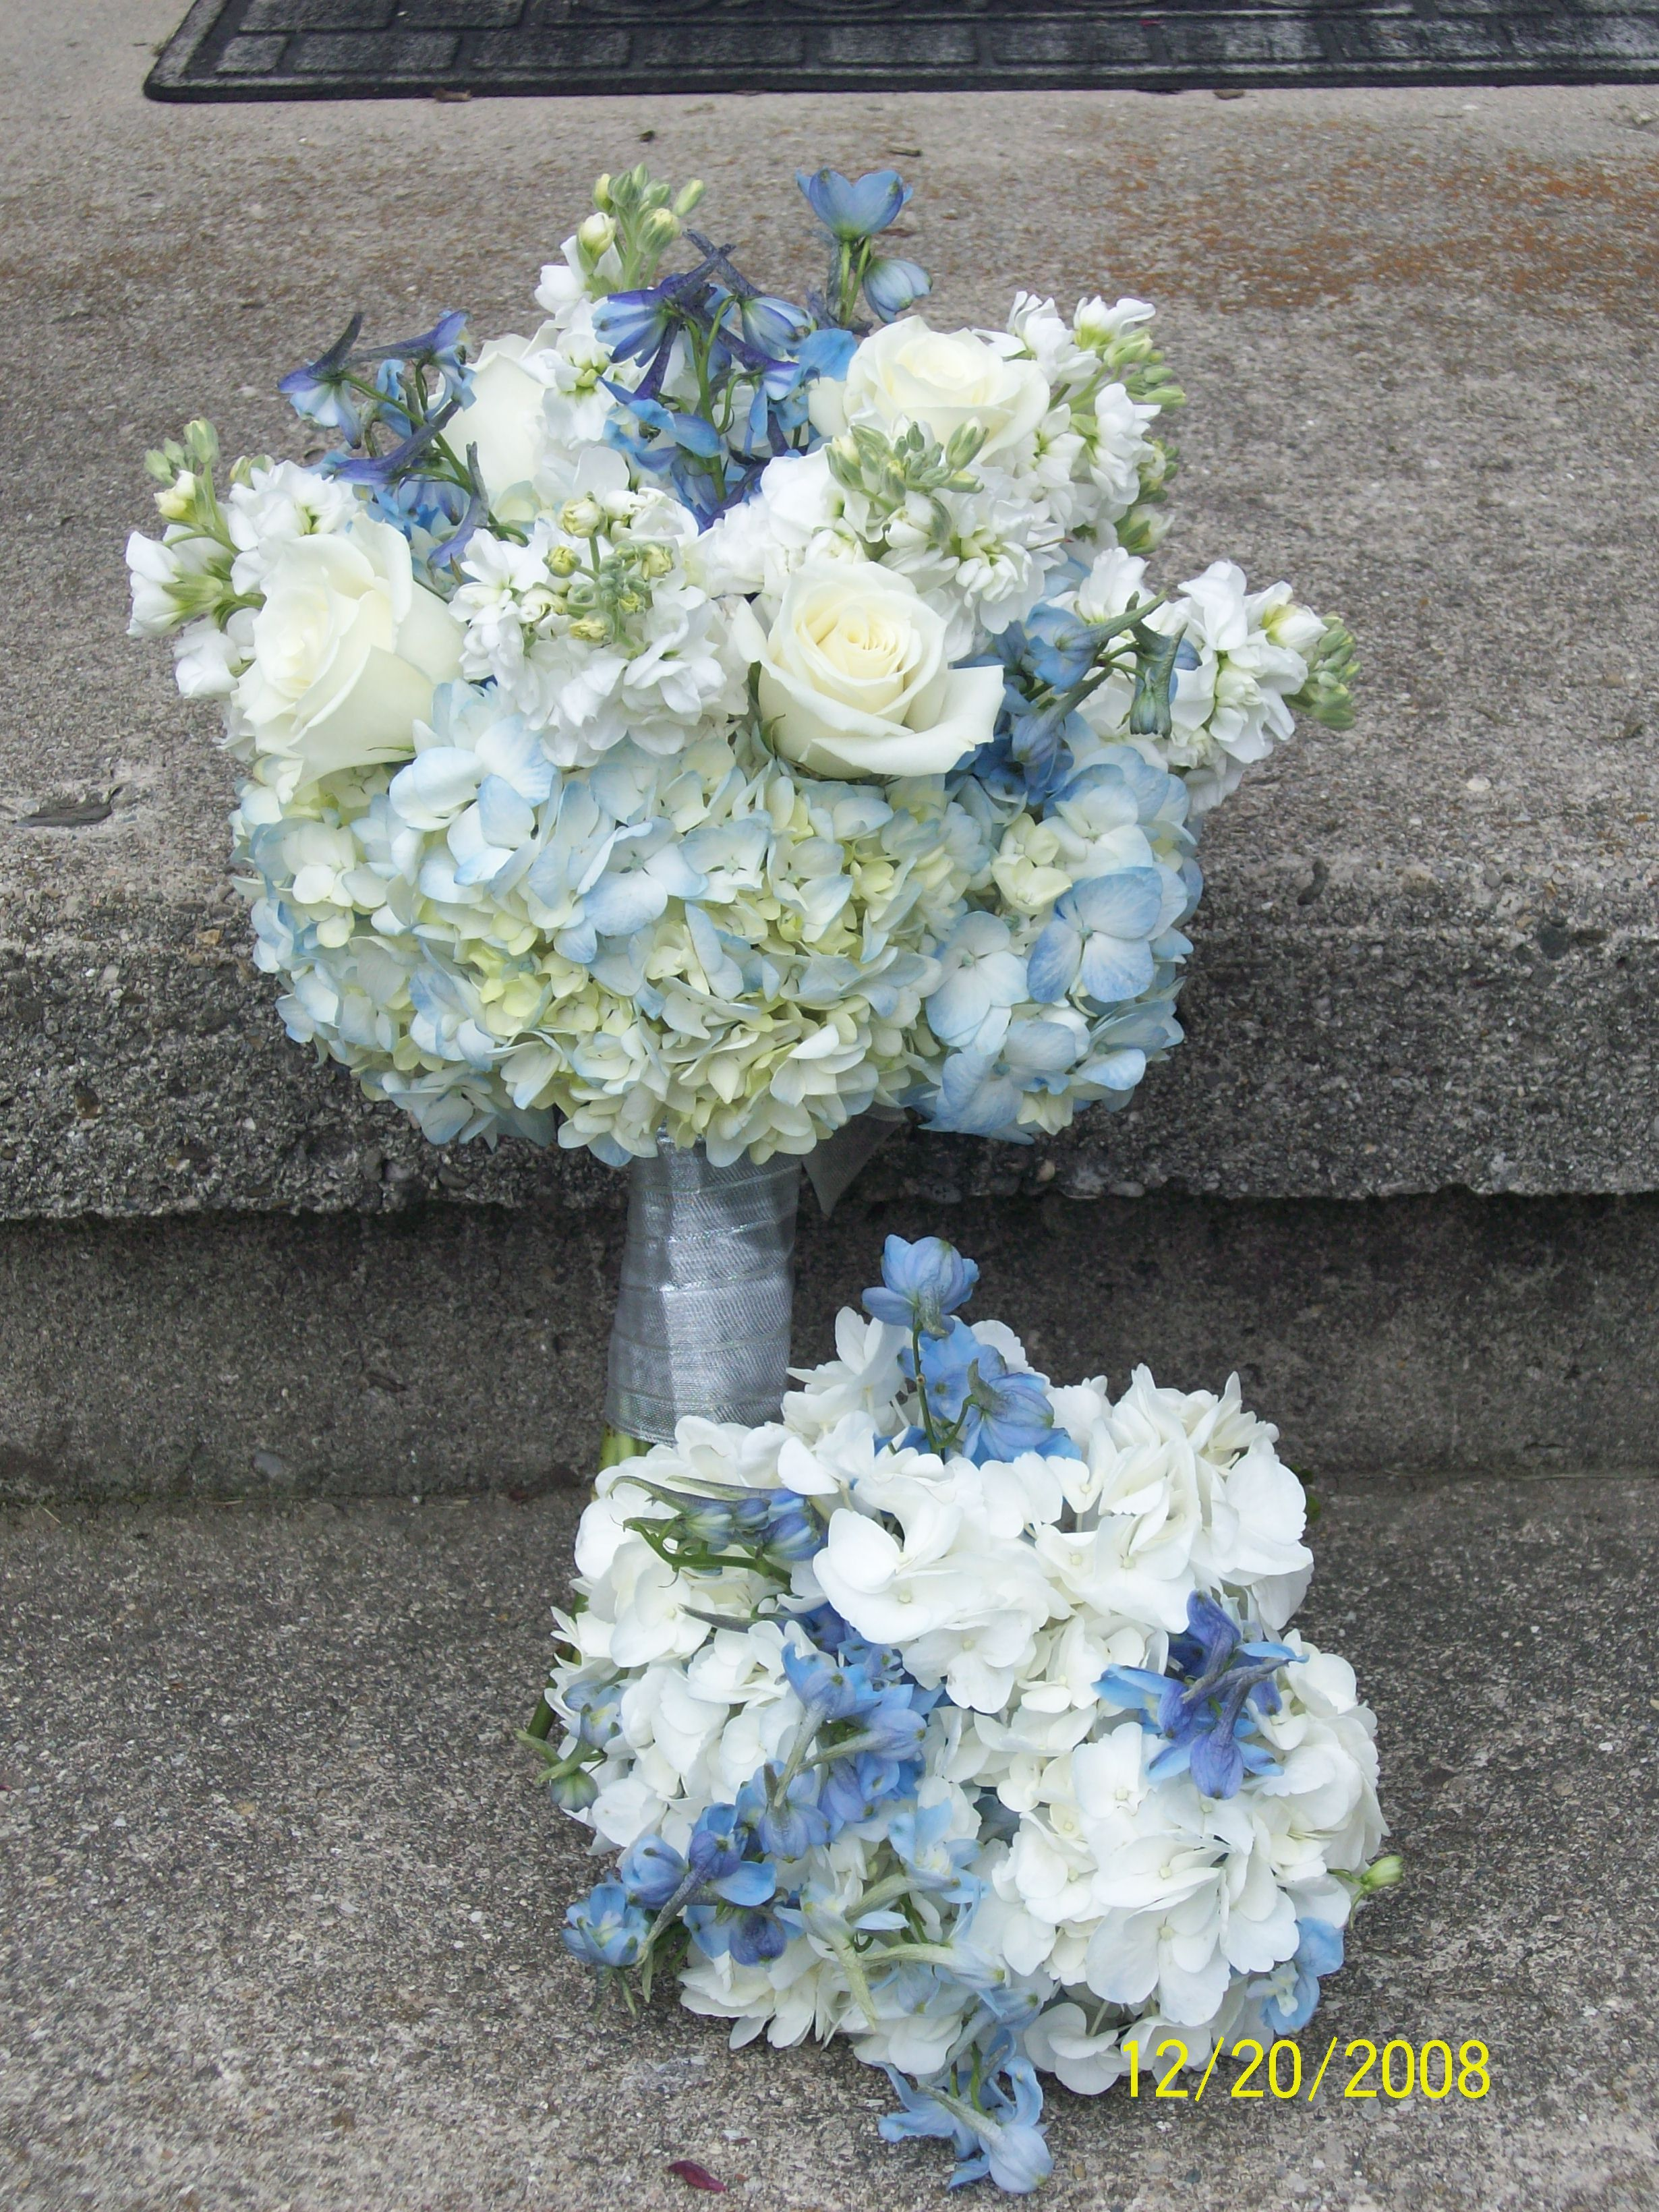 Flowers & Decor, Bridesmaids, Bridesmaids Dresses, Fashion, white, blue, Bride Bouquets, Bridesmaid Bouquets, Flowers, Bouquet, Brides, Flower Wedding Dresses